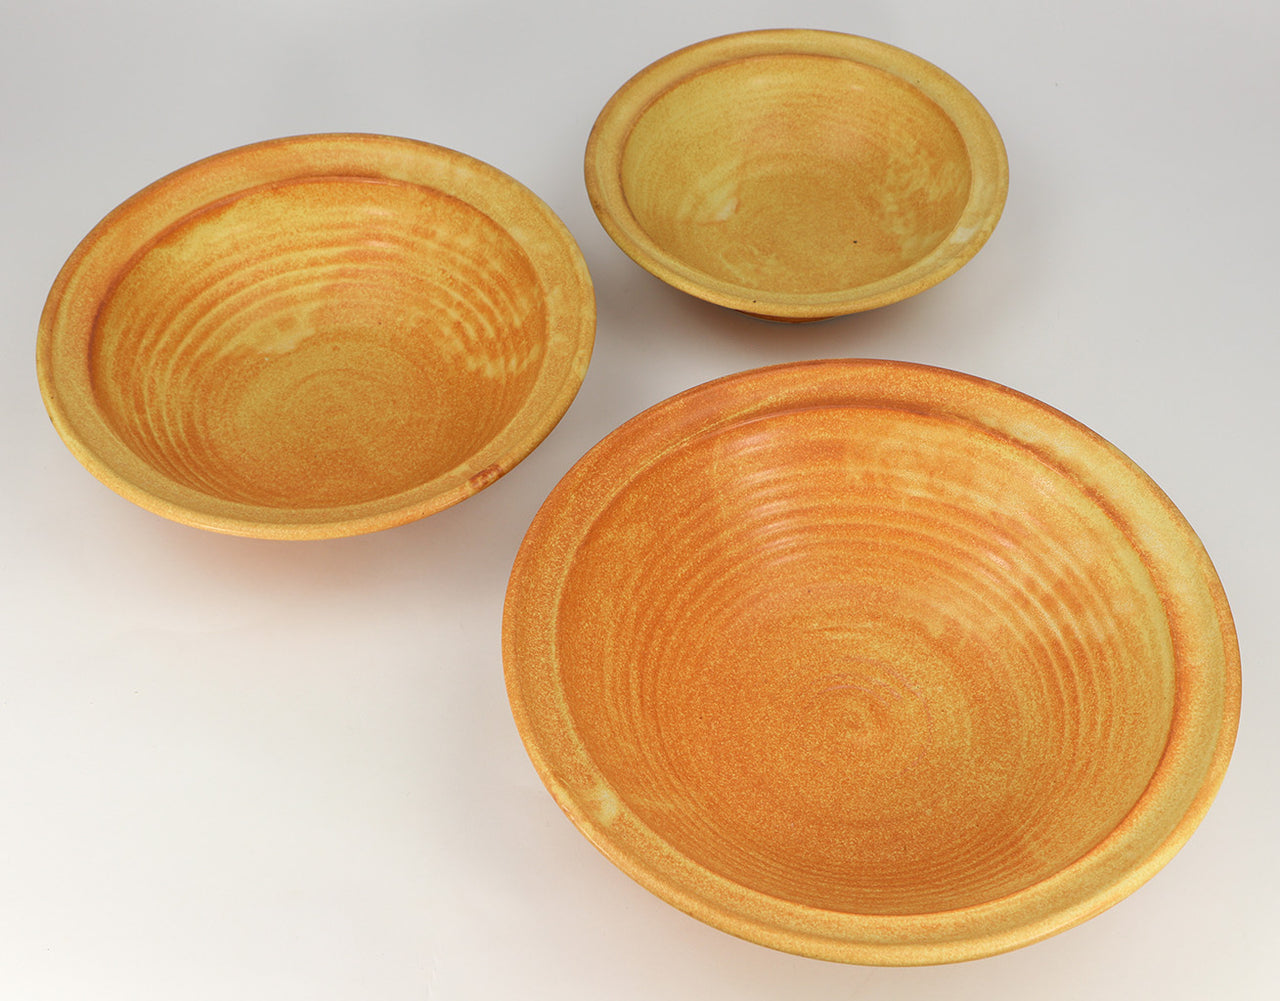 3-Piece Nesting Serving Bowl Set (24-64 oz.): Winoker Yellow Fern Pattern